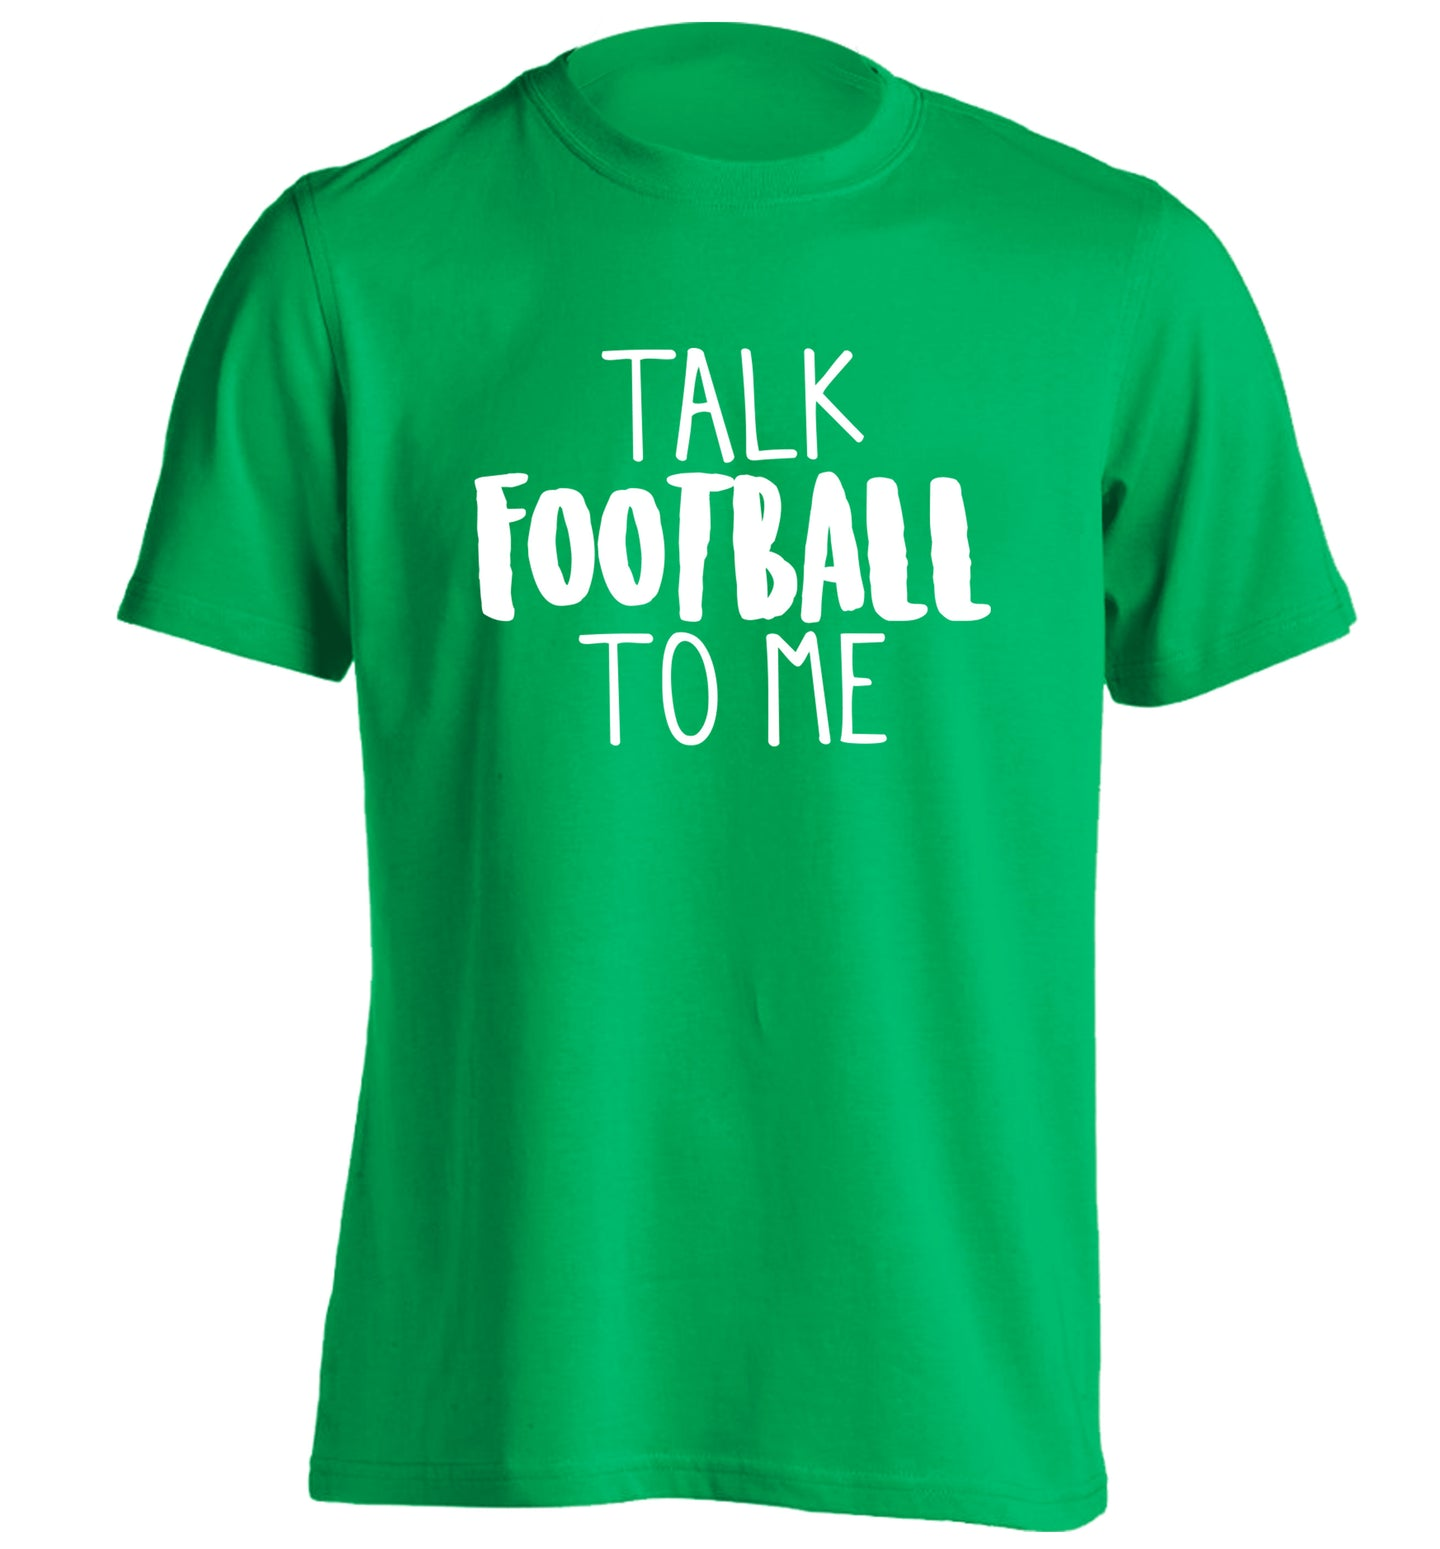 Talk football to me adults unisexgreen Tshirt 2XL